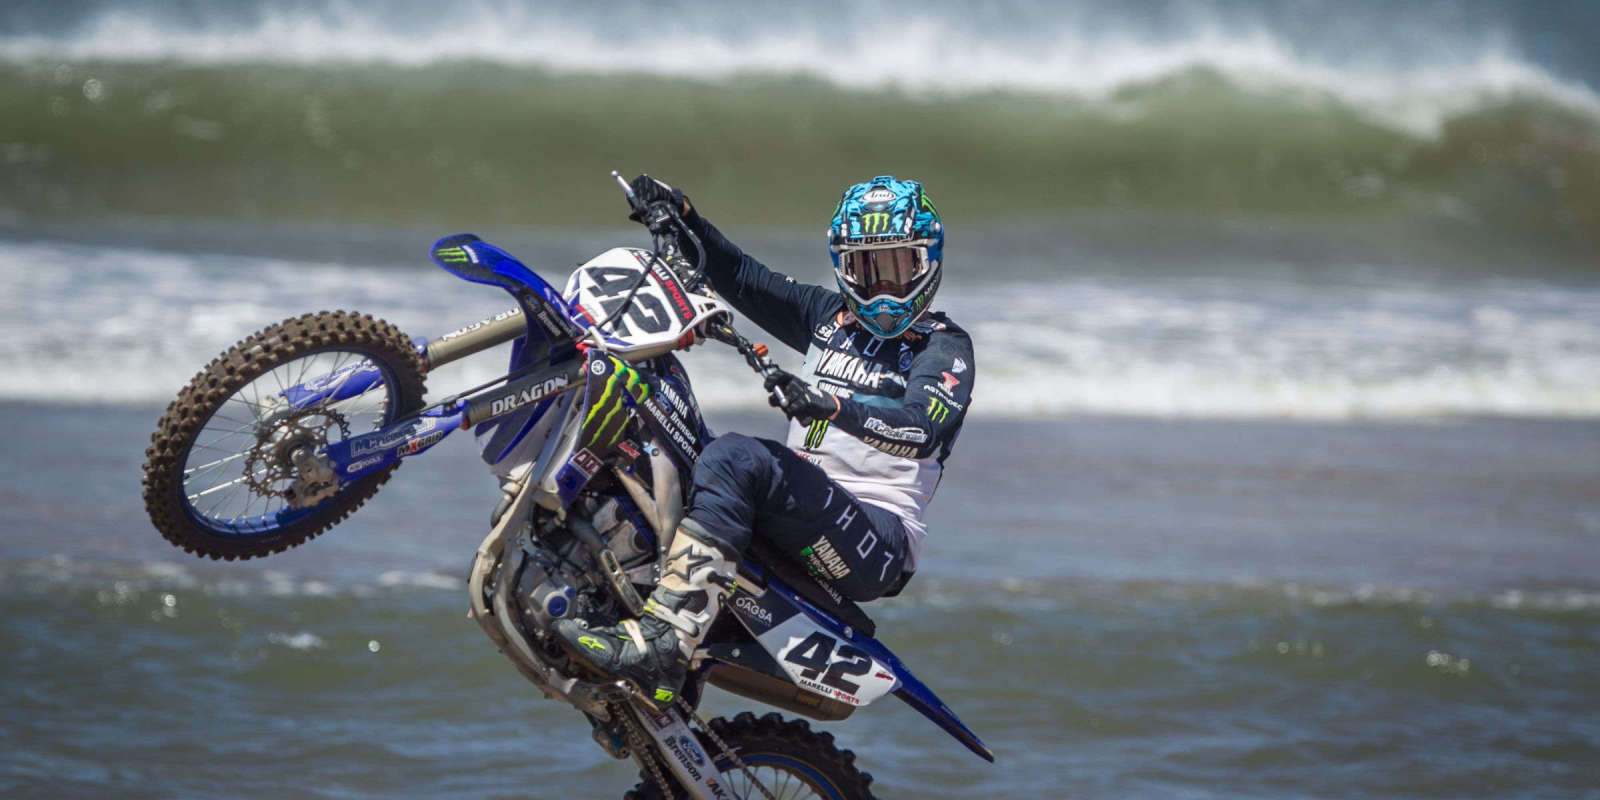 Photos and videos from Adrien Ven Beveren riding in Argentina